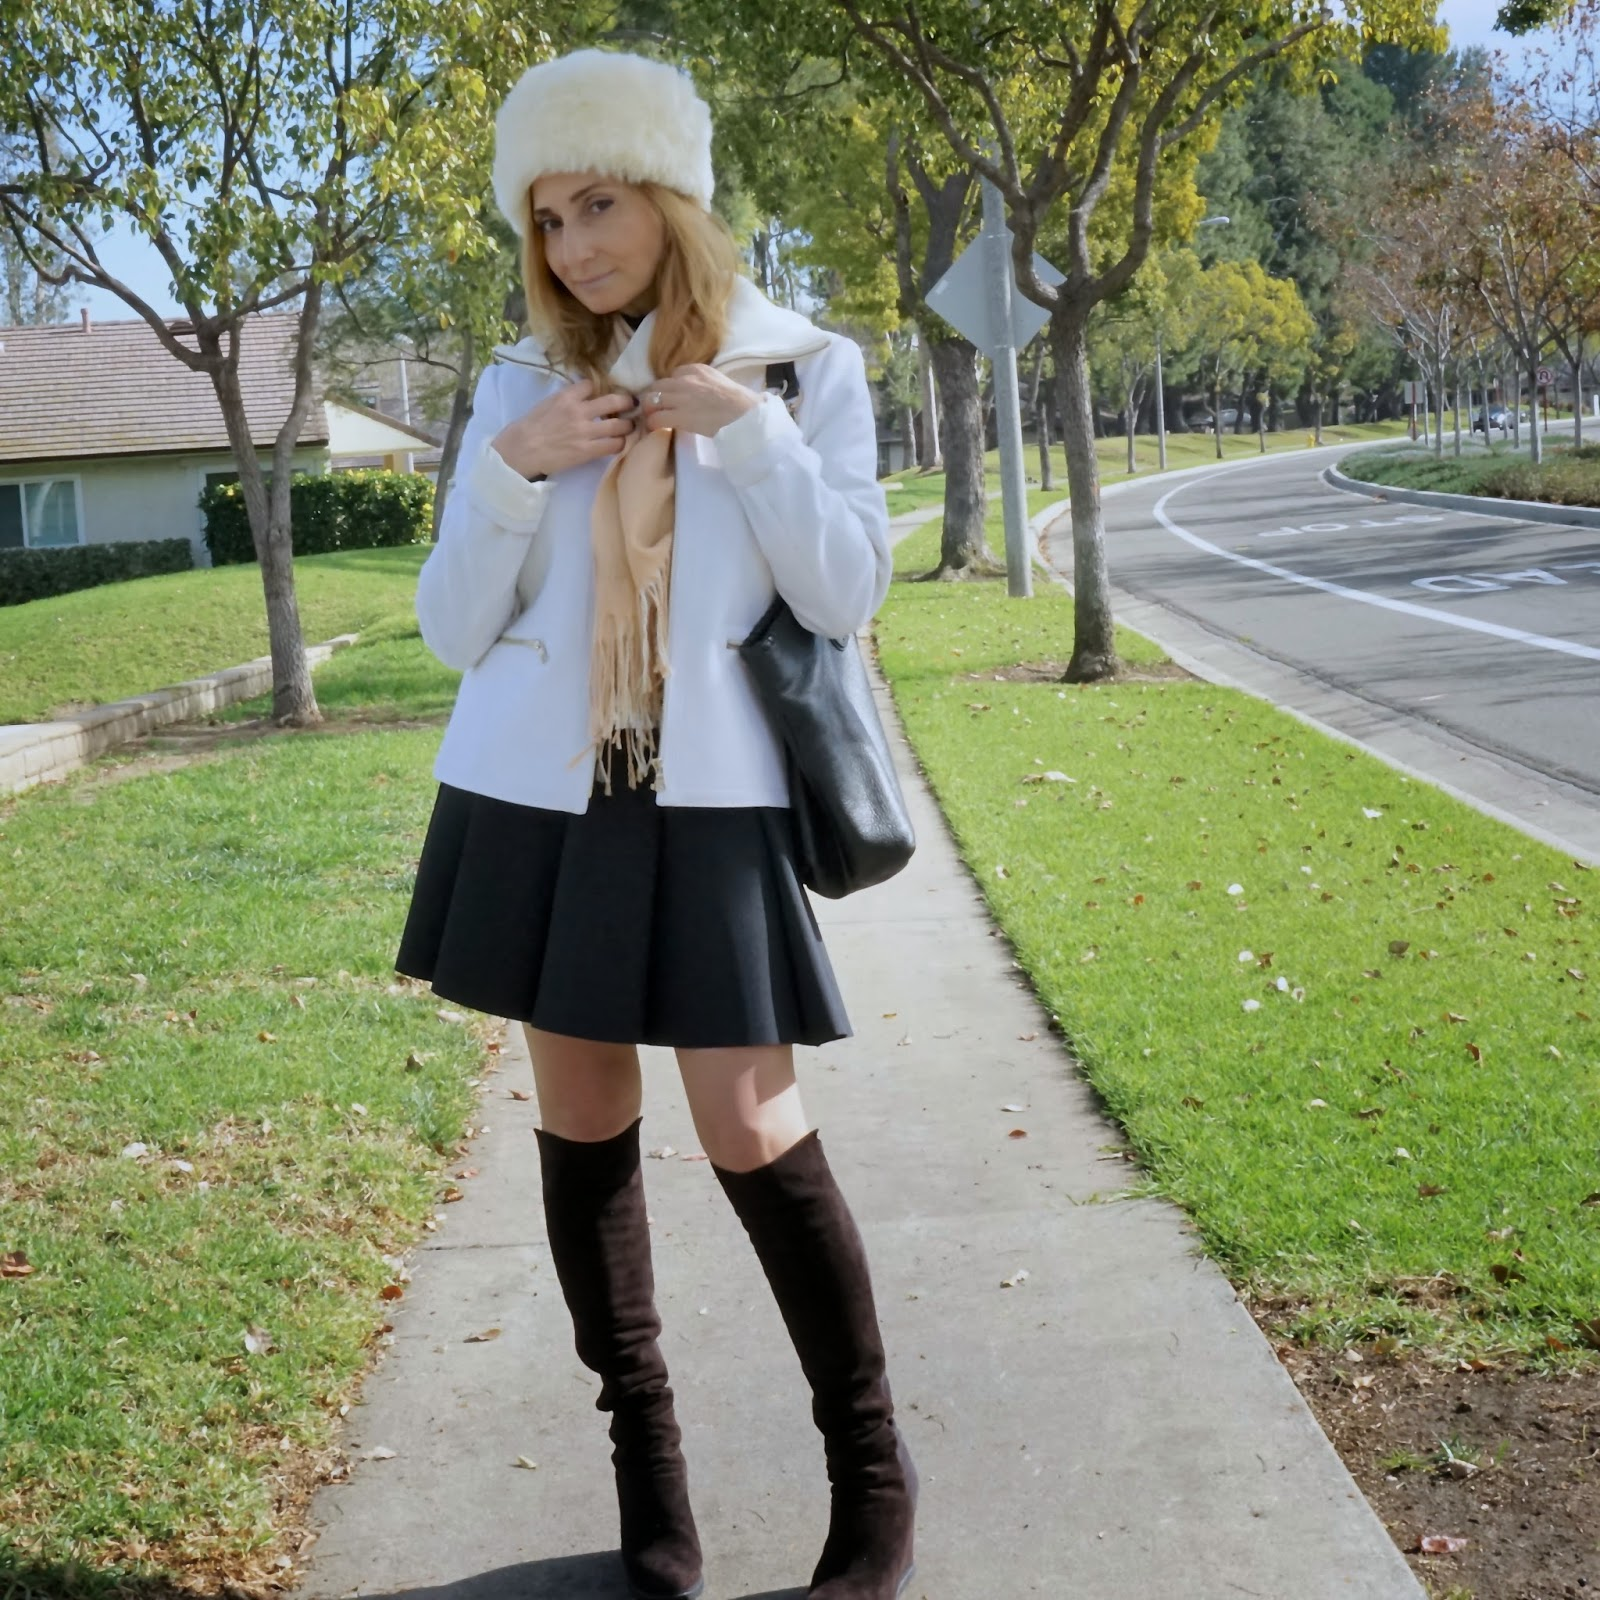 e4eab9e825f50 Feel Good Outfit: Jacket in Winter White, Faux Fur Hat, and Pleated Skirt